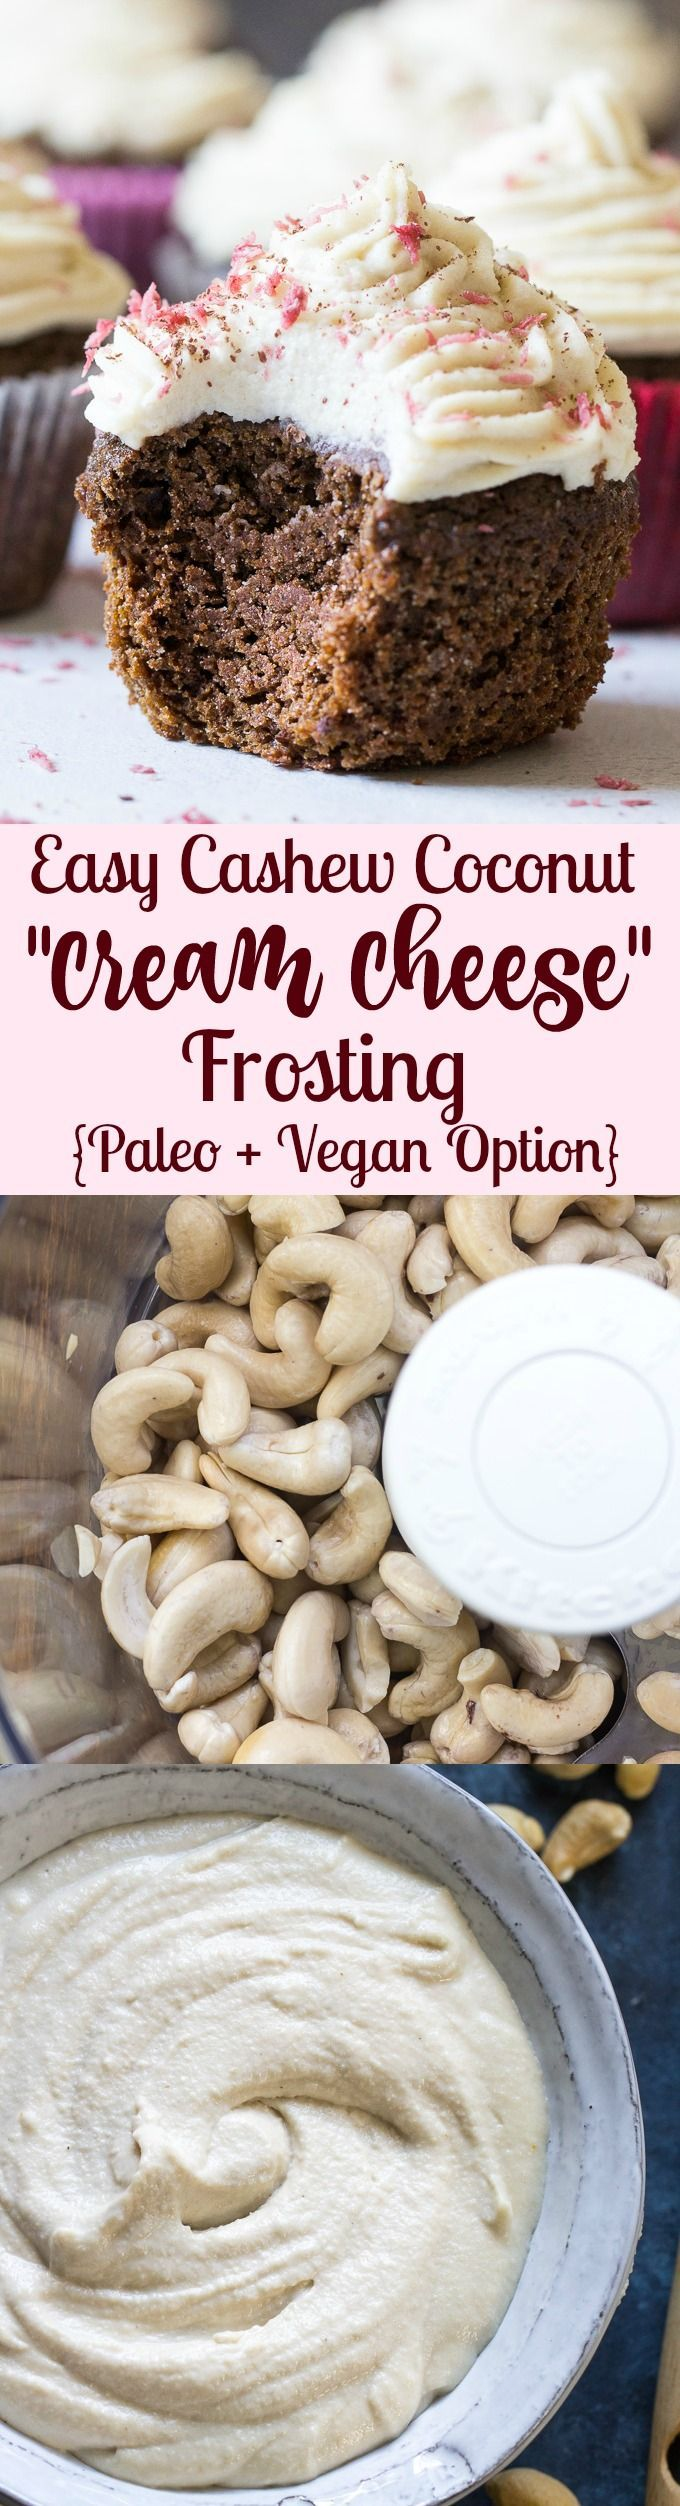 Coconut Cashew Cream Cheese Frosting that's Paleo with a vegan option. Perfect to frost cupcakes, cakes, cookies, brownies and bars! Dairy free.